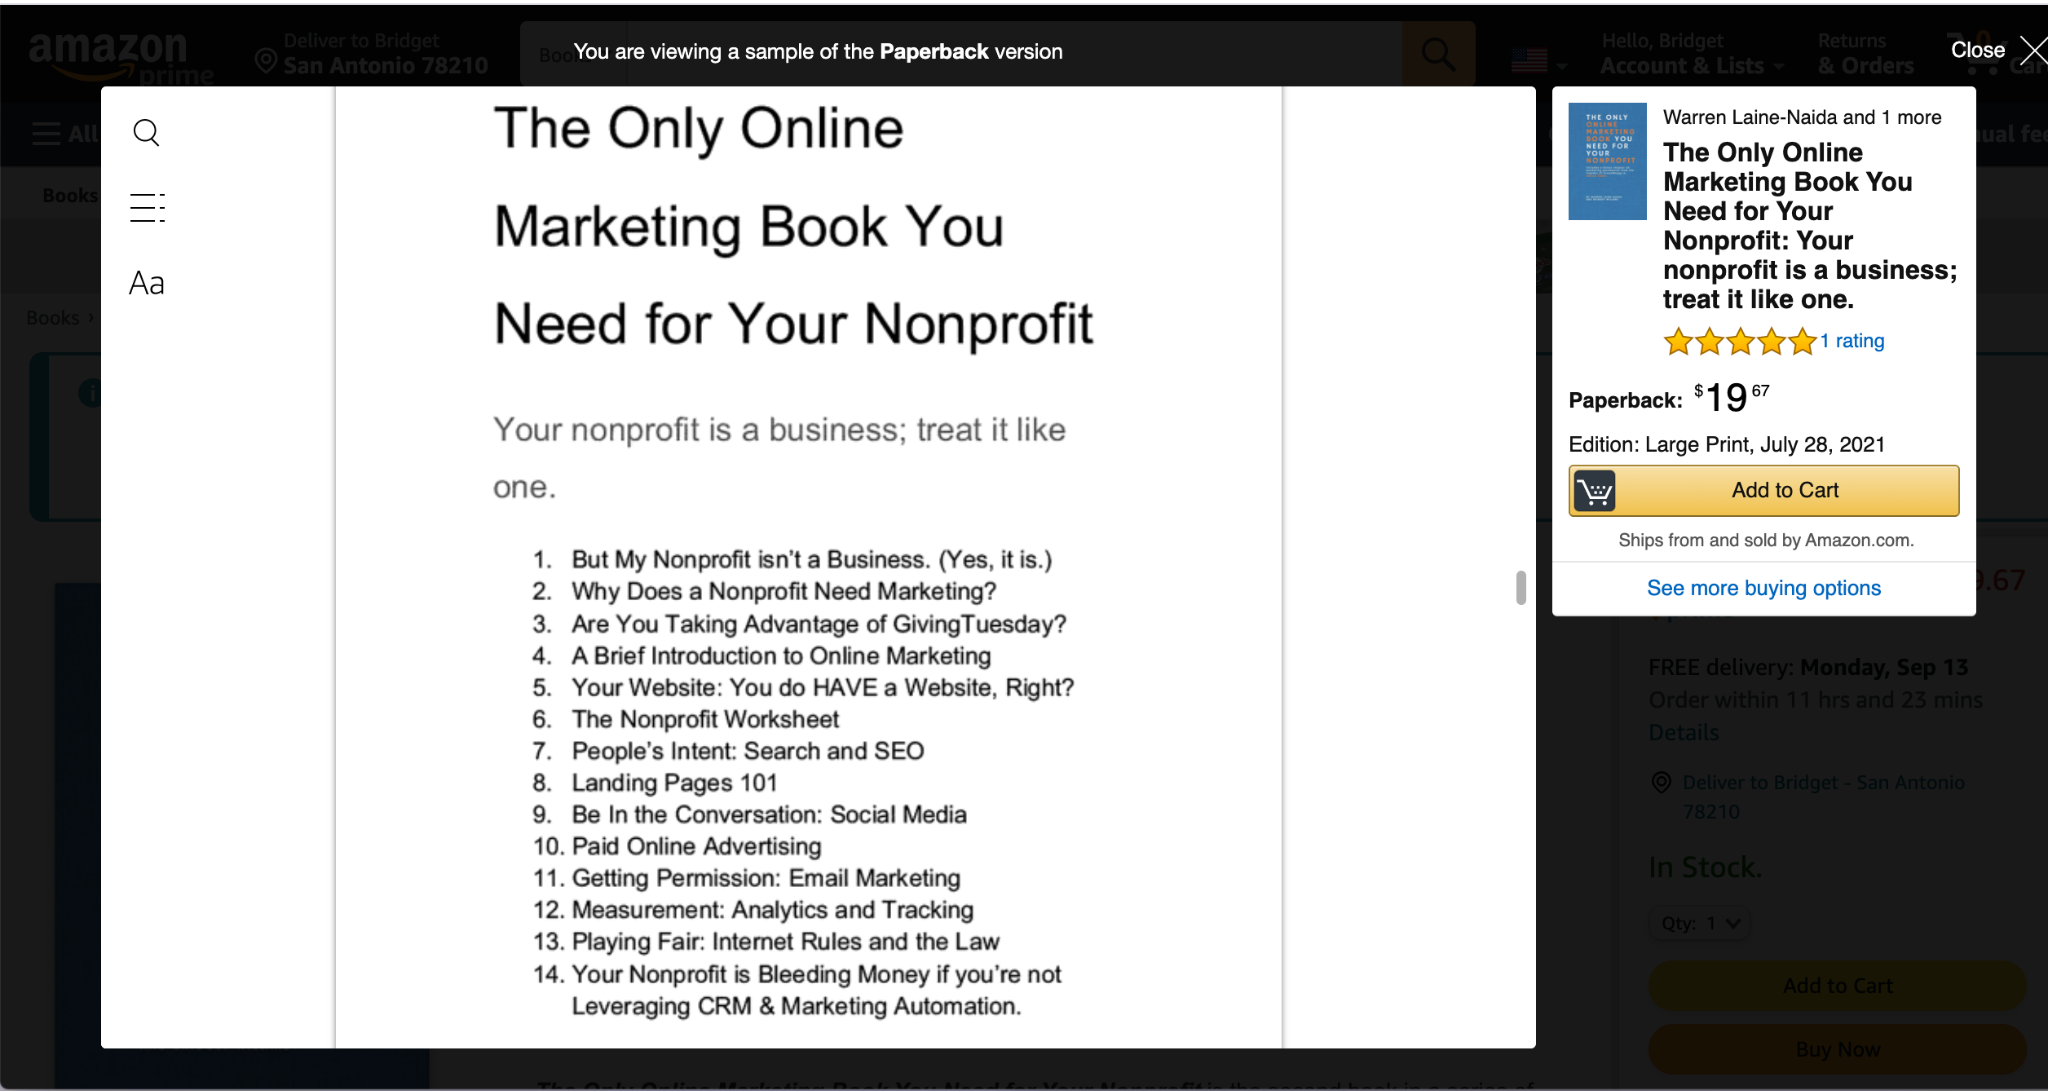 Table of contents screenshot for The Only Online Marketing Book You Need for Your Nonprofit.